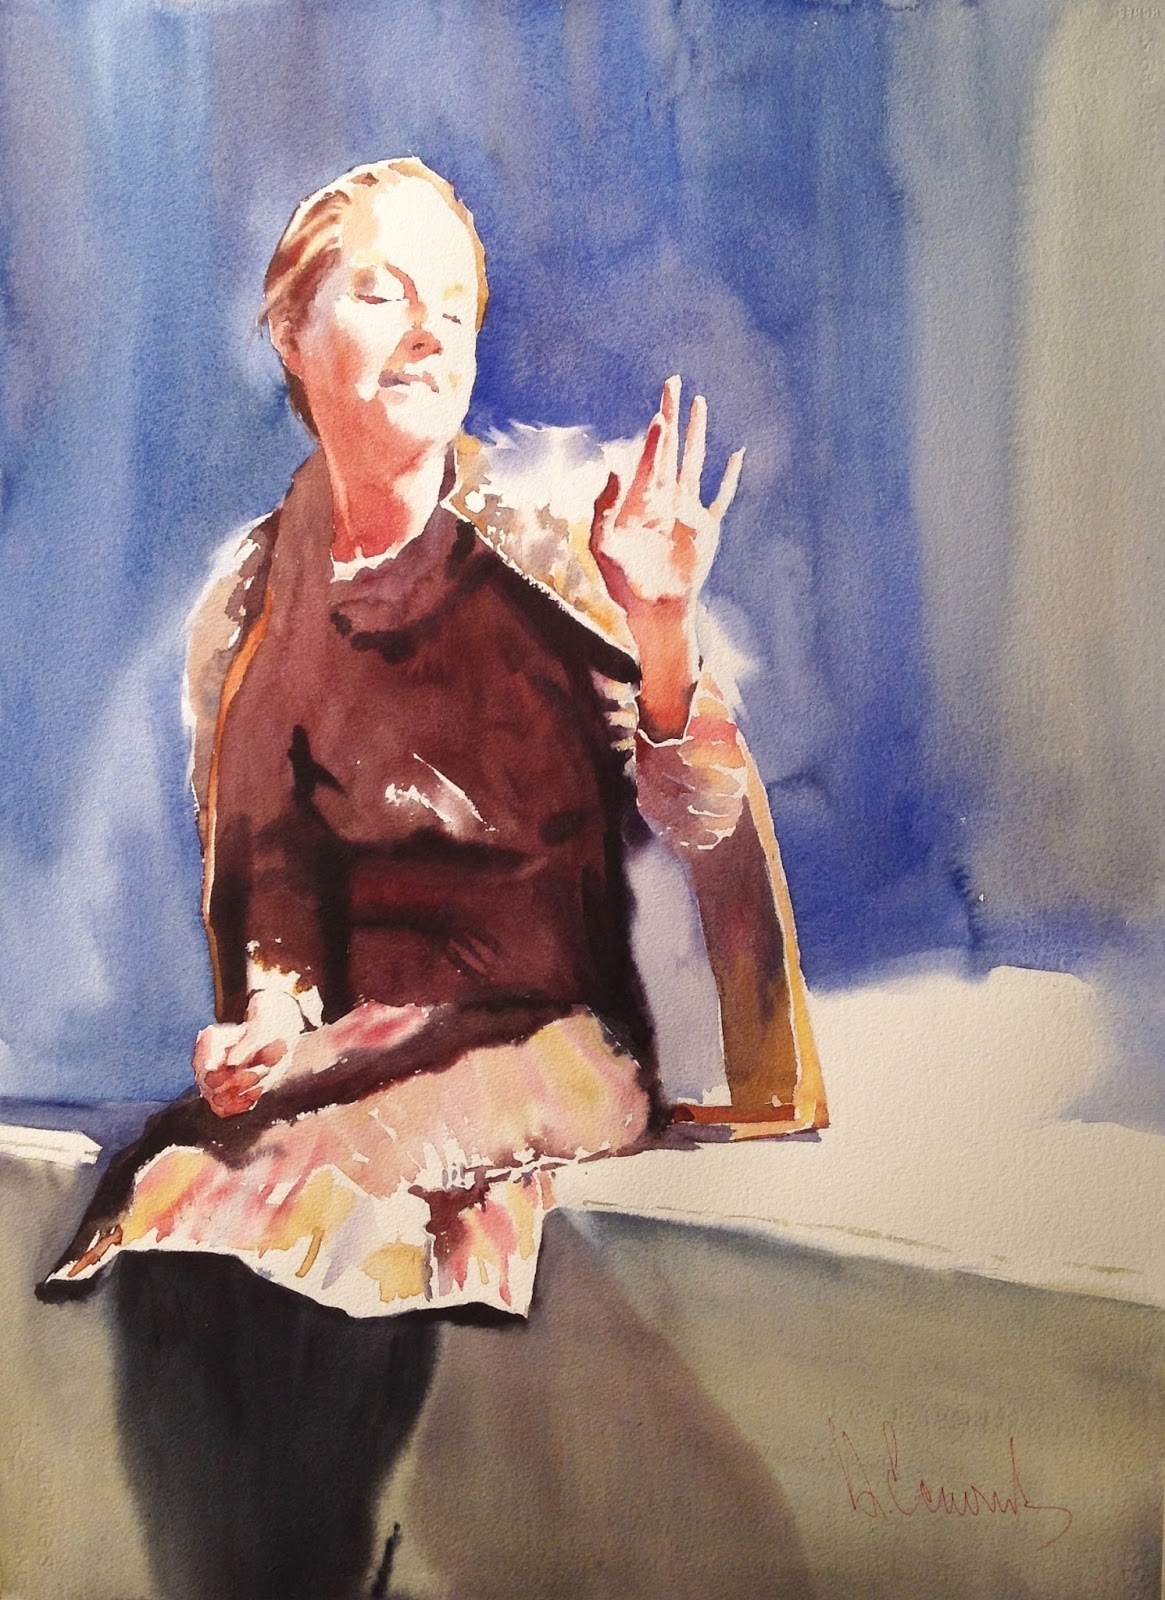 Watercolor artist magazine review - So This Is How I Came But First Not To The Watercolors But Via Watercolor To Oil At The End Of Training I Shifted To Easel Painting